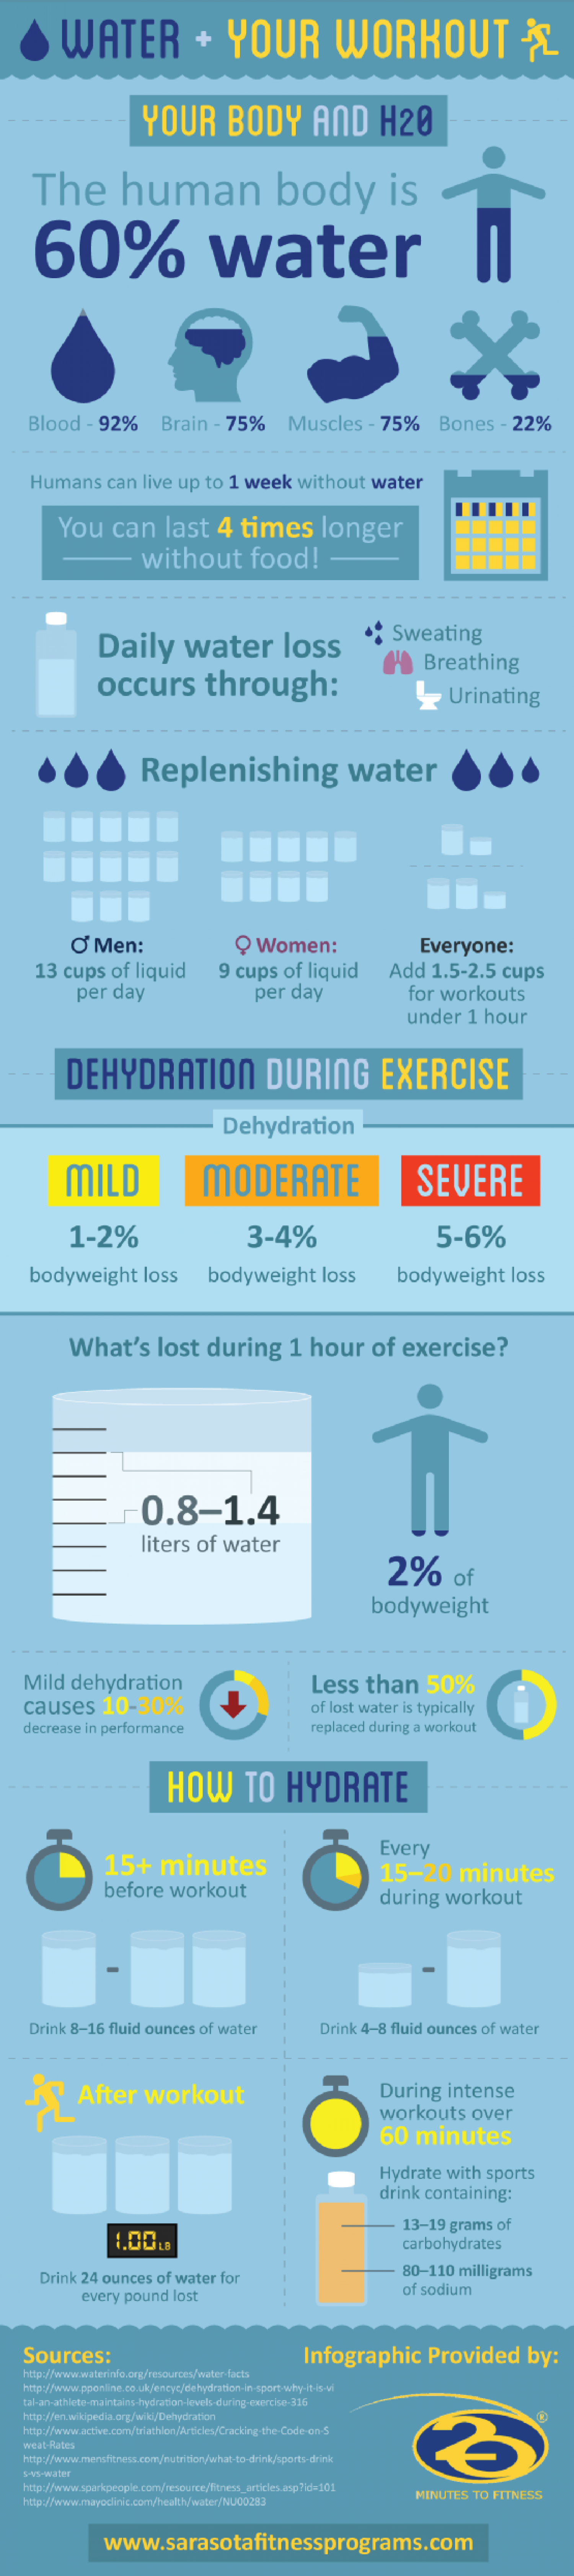 Water Plus Your Workout Infographic